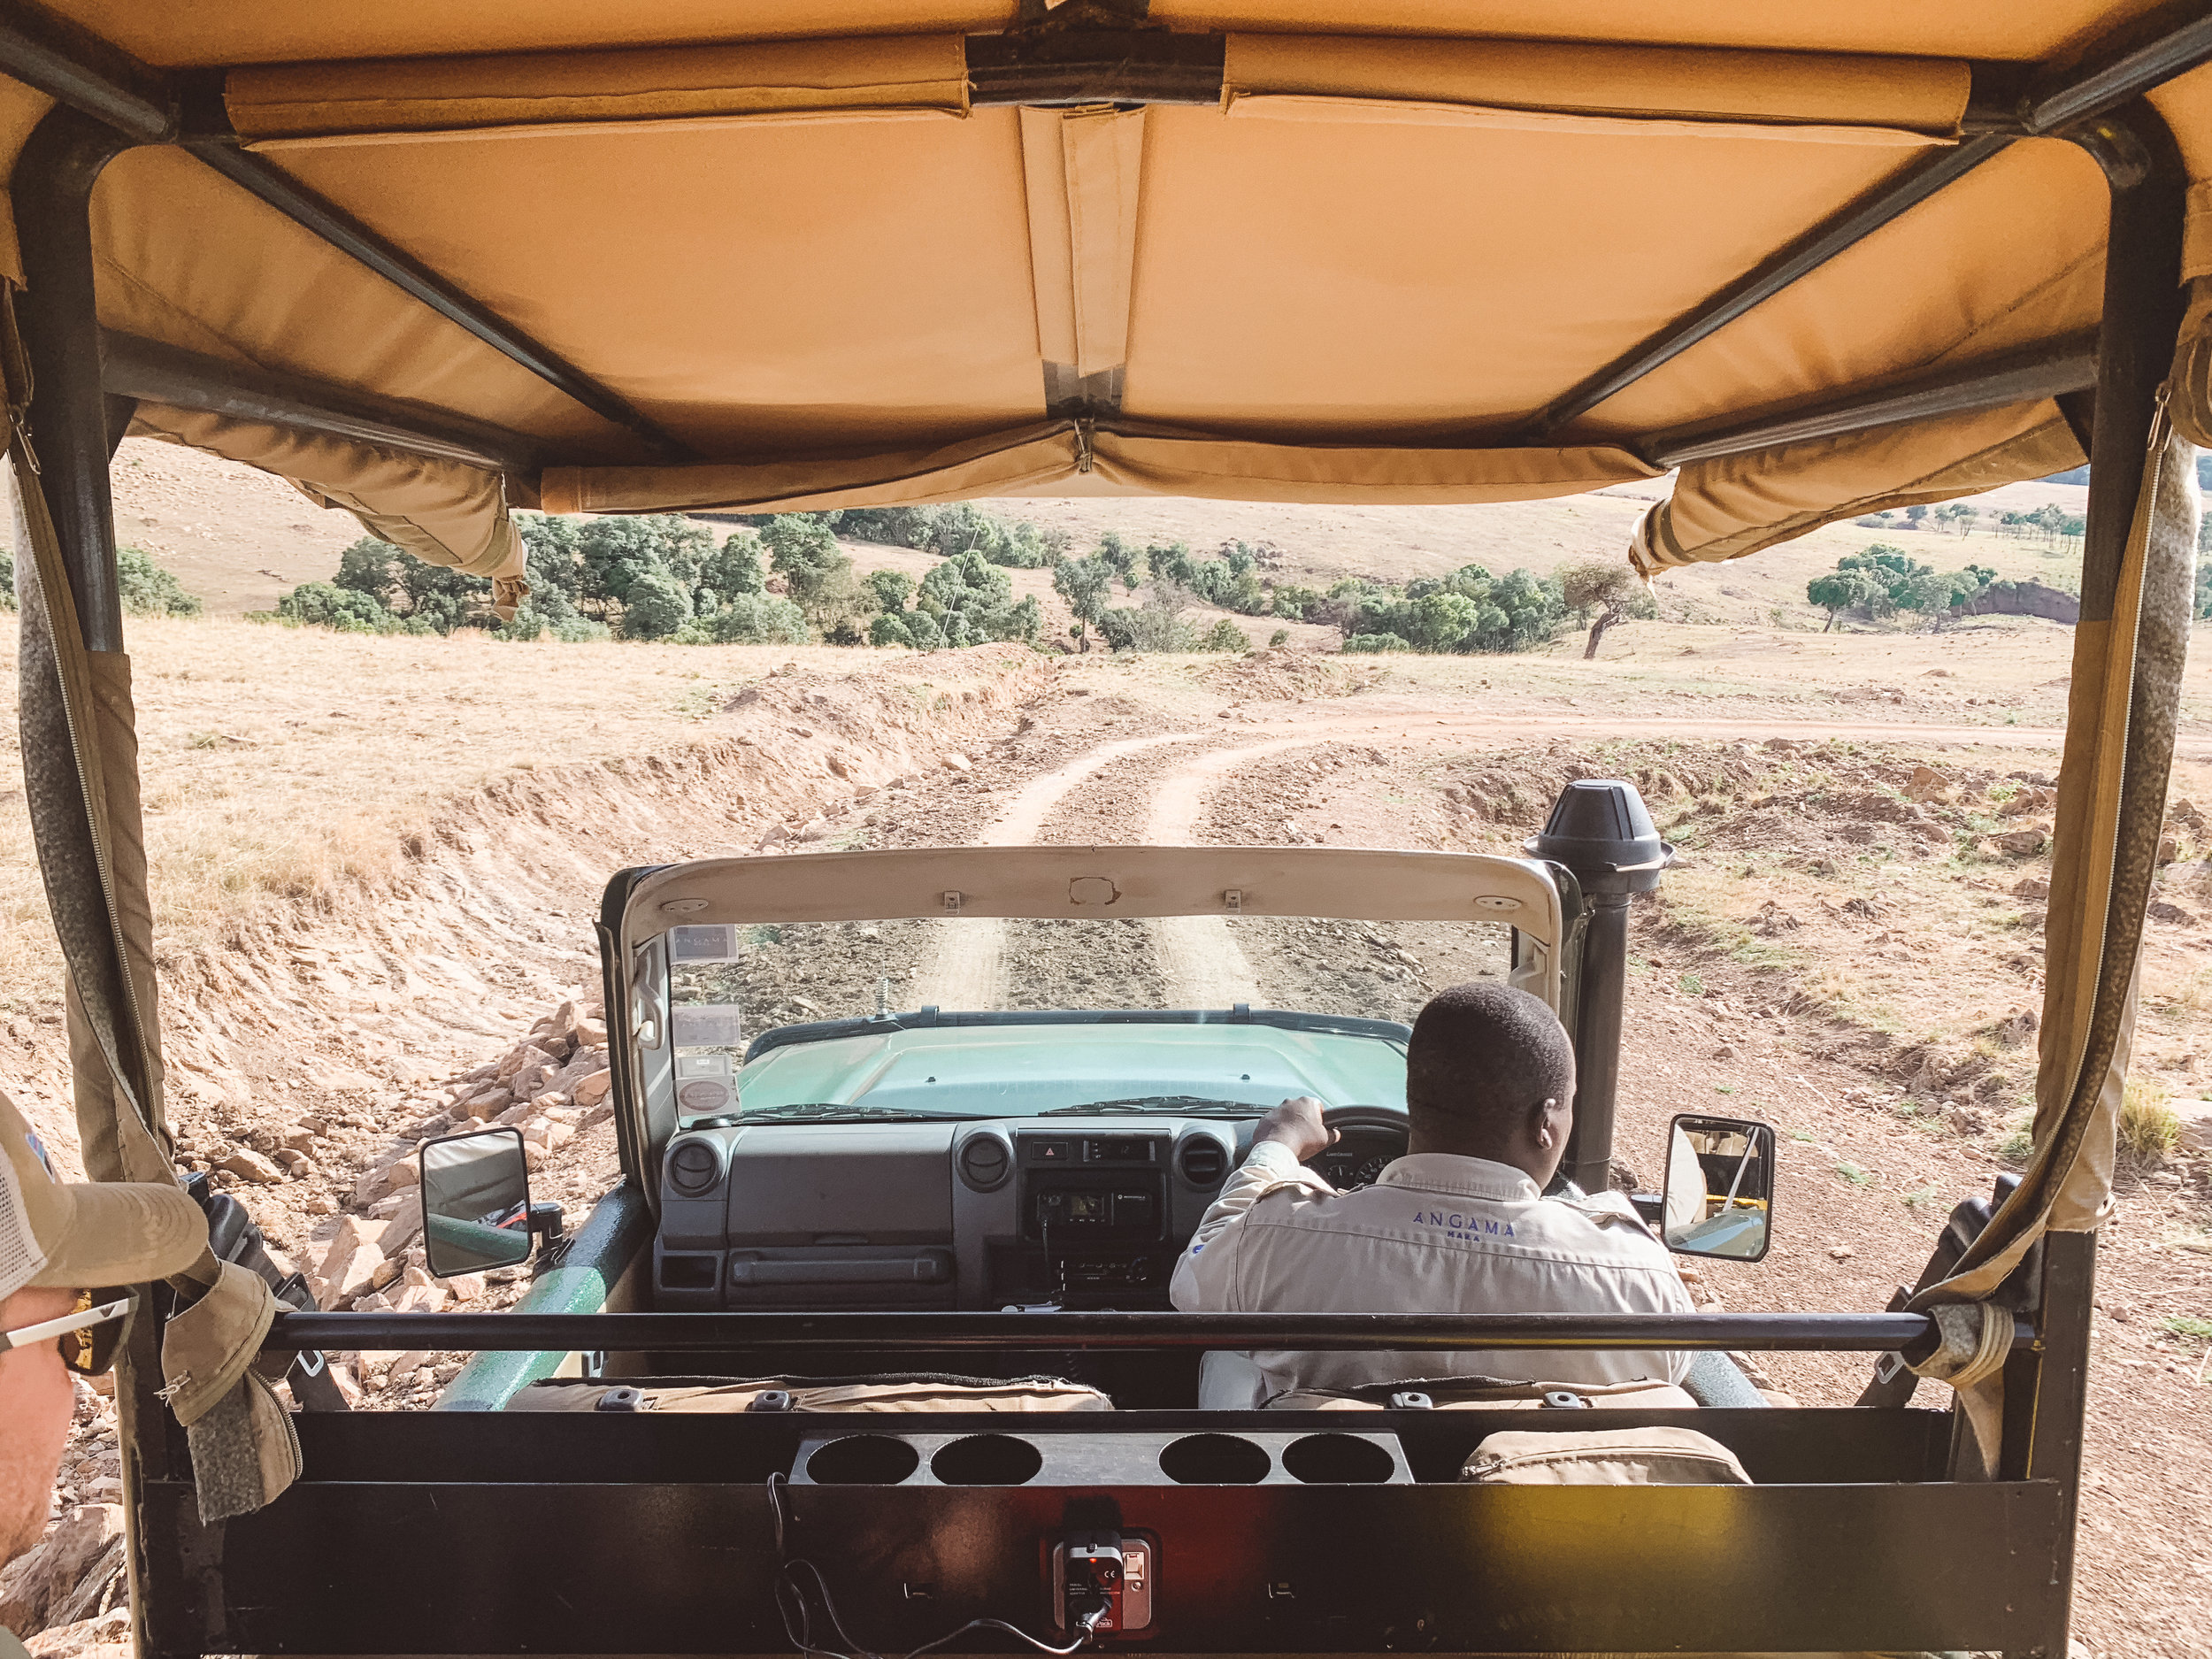 Descending into the Mara with Geoffrey, our knowledgable safari guide..